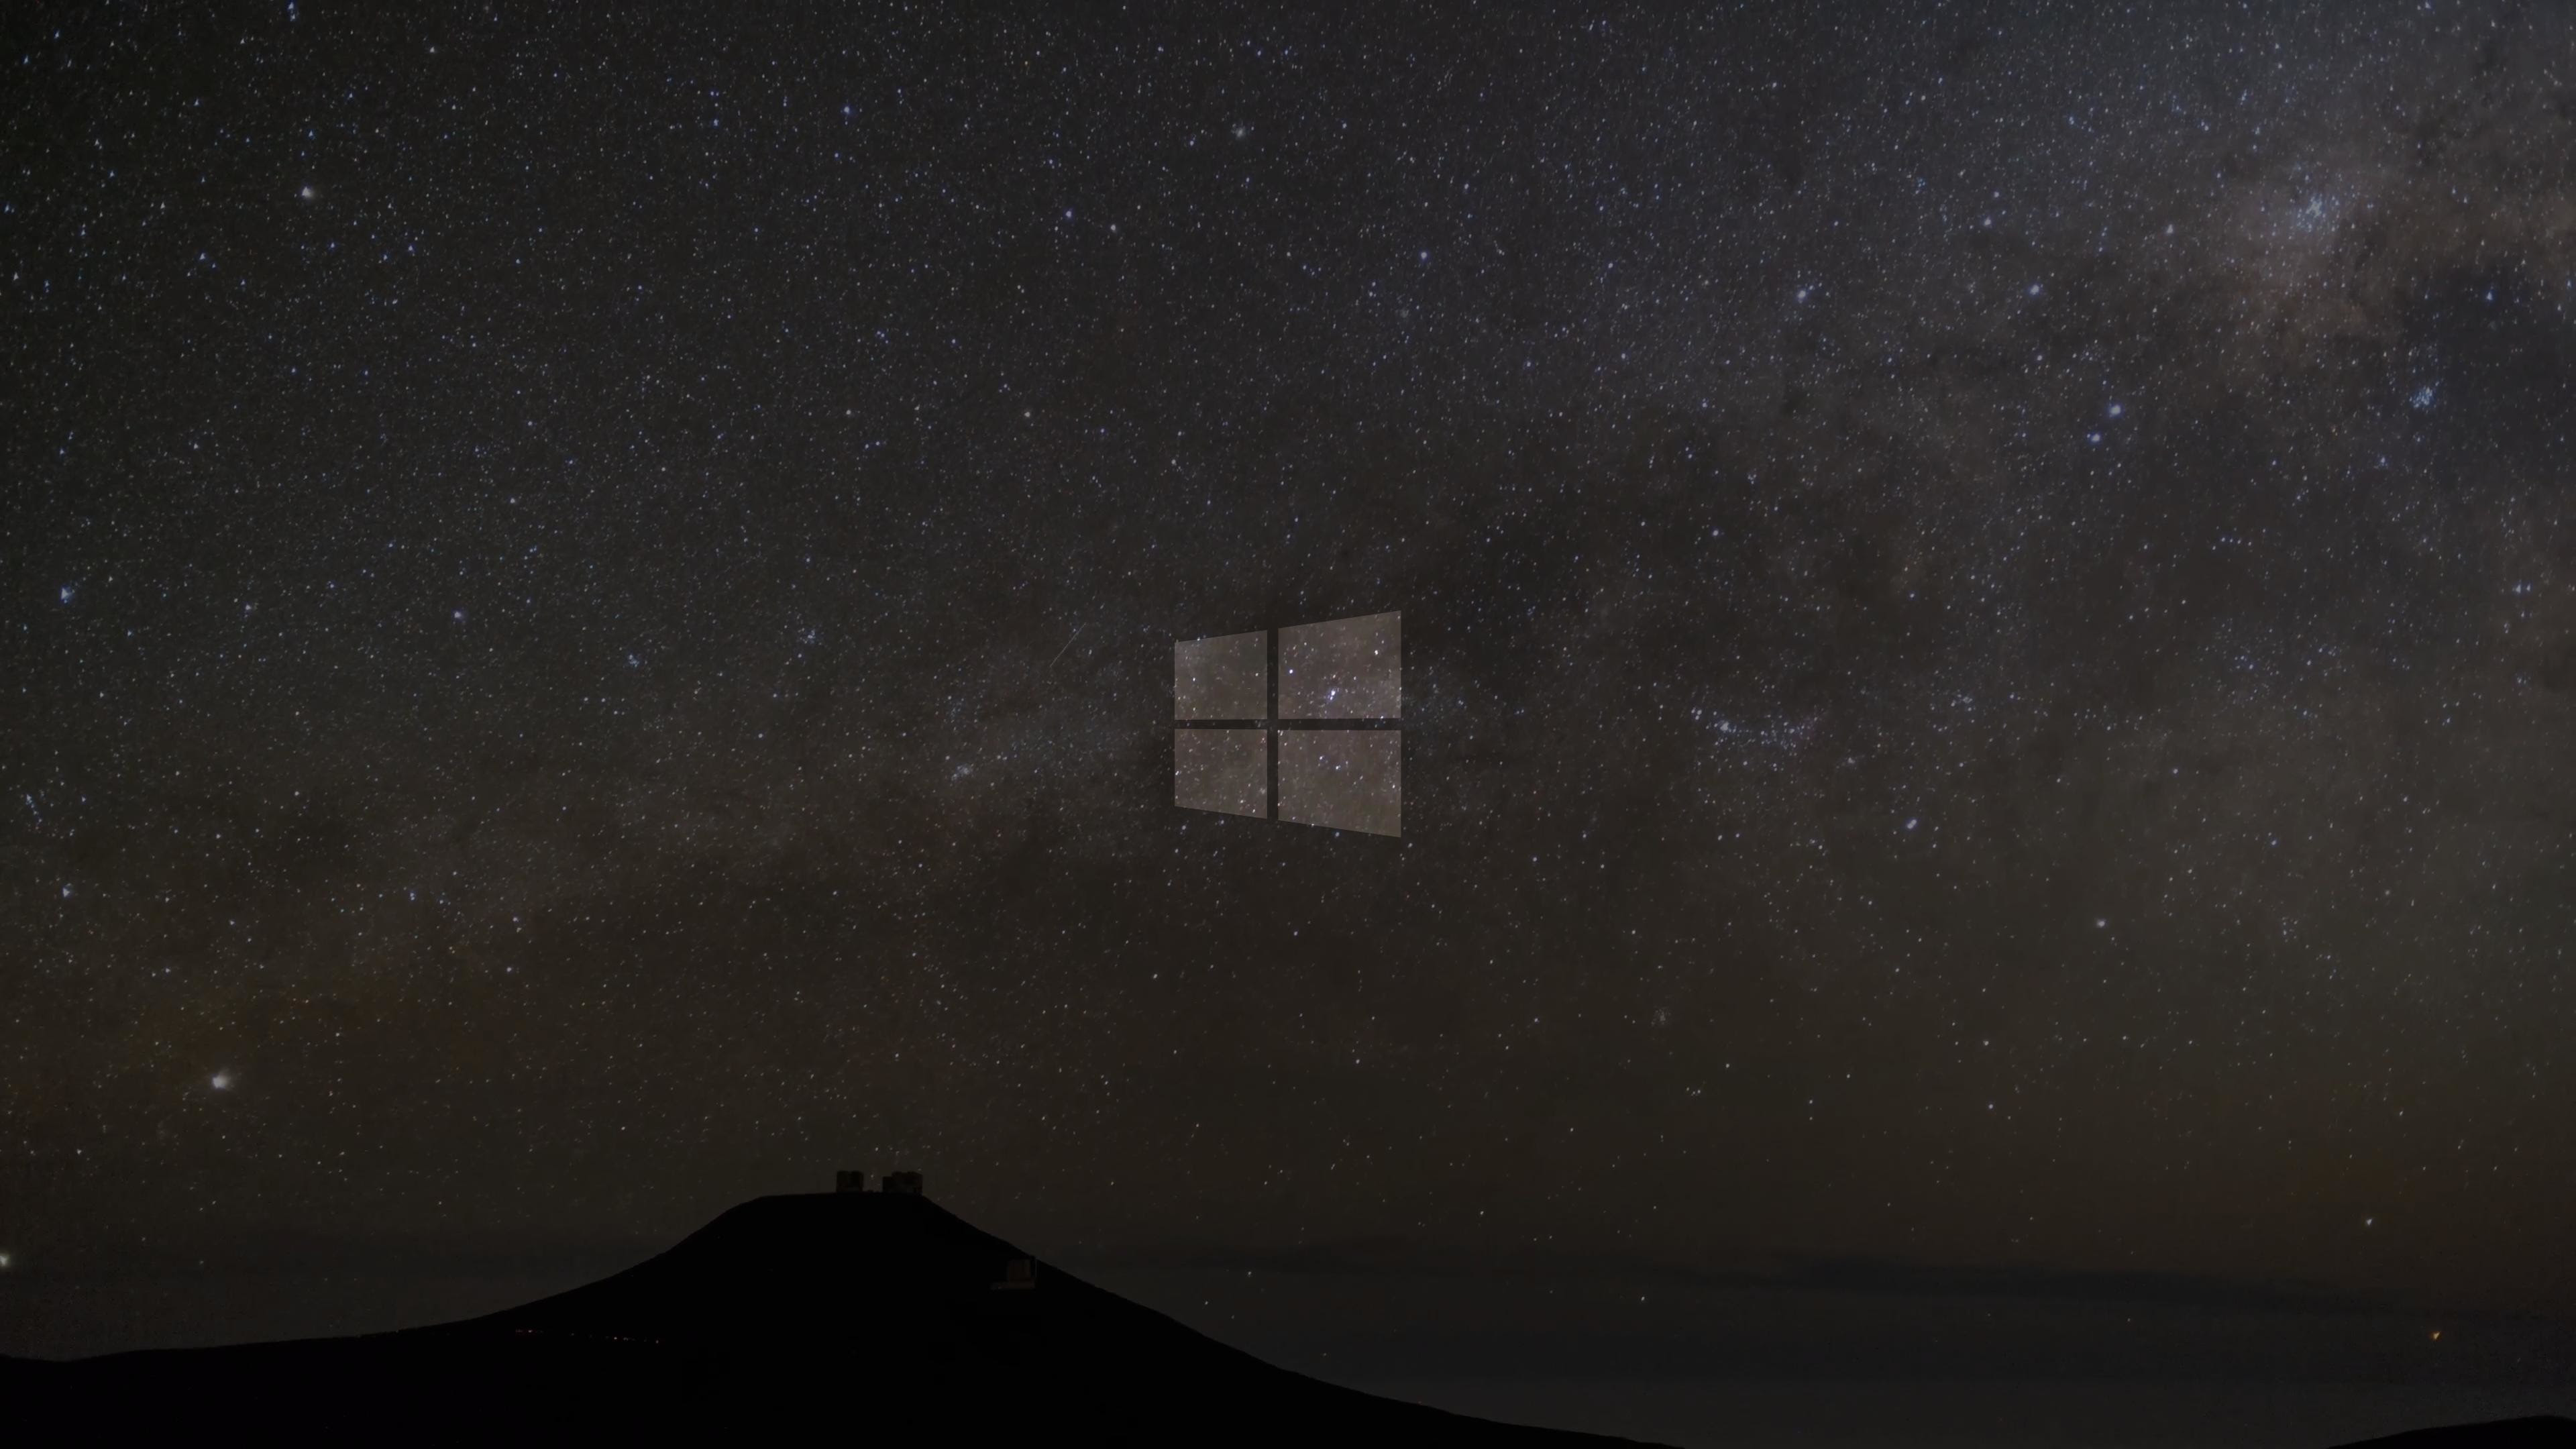 Space Wallpaper Windows 10 (69+ images)